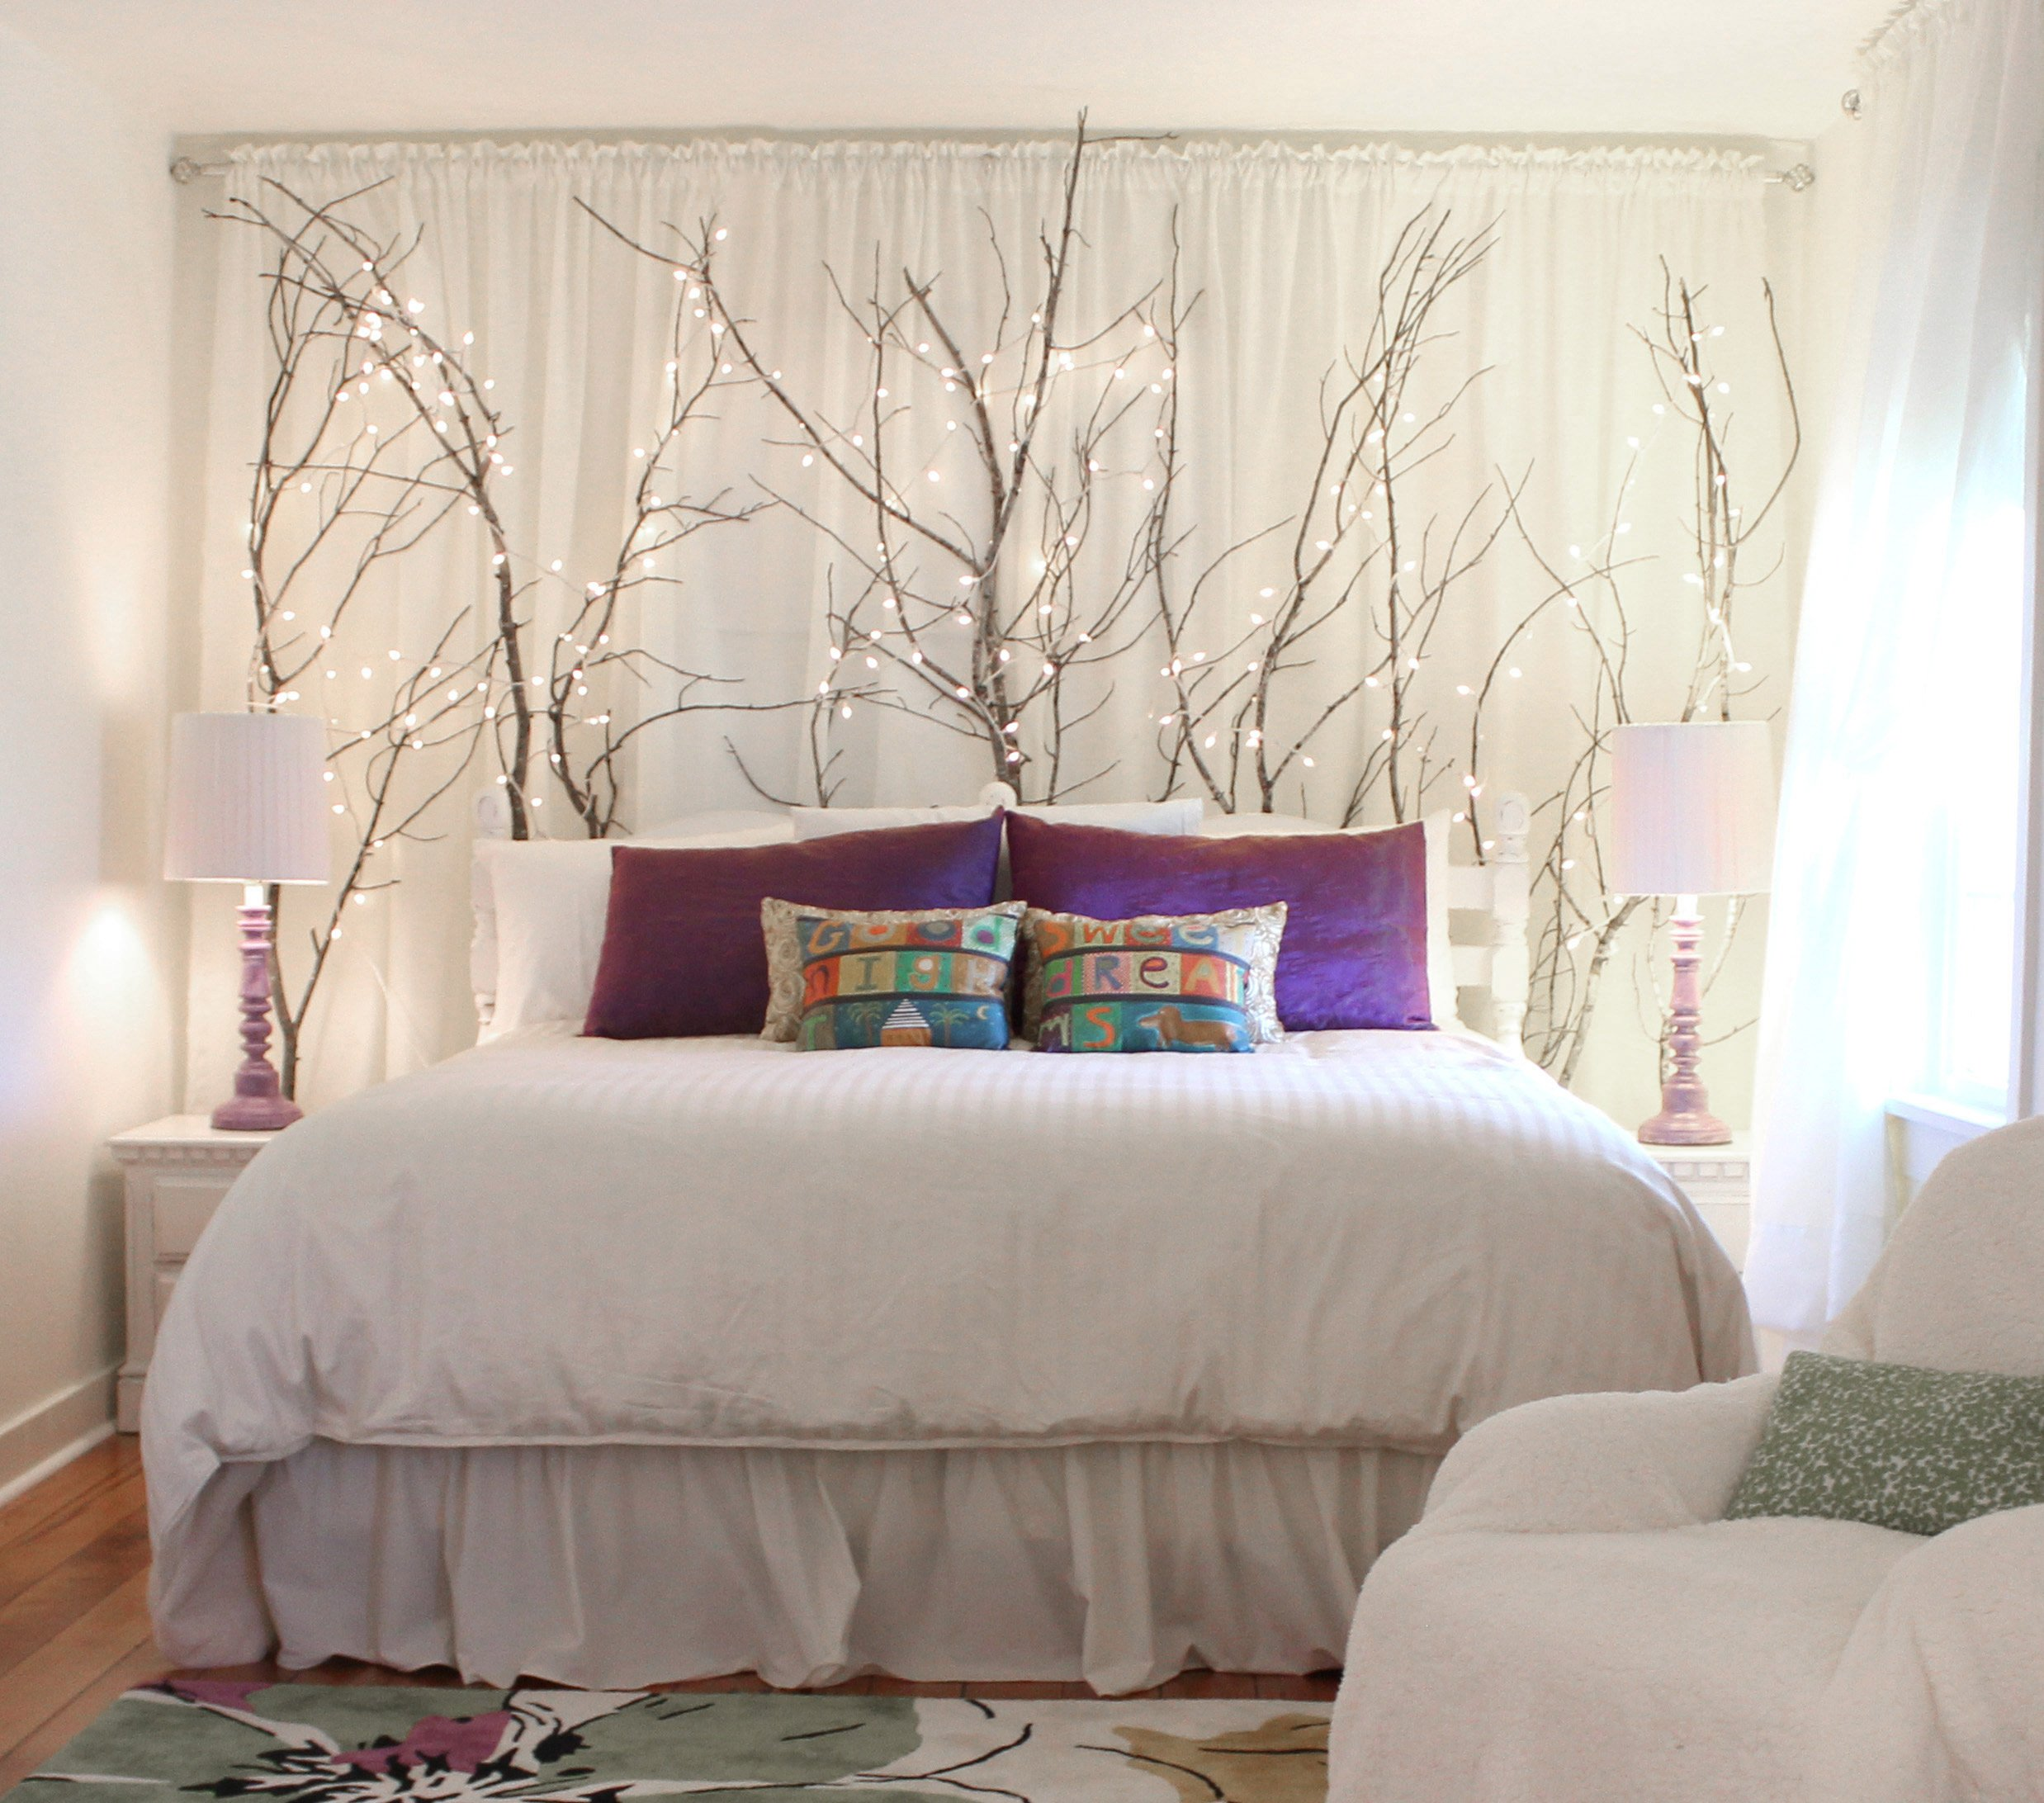 How To Style A Dramatic Bedroom Using Tree Branches